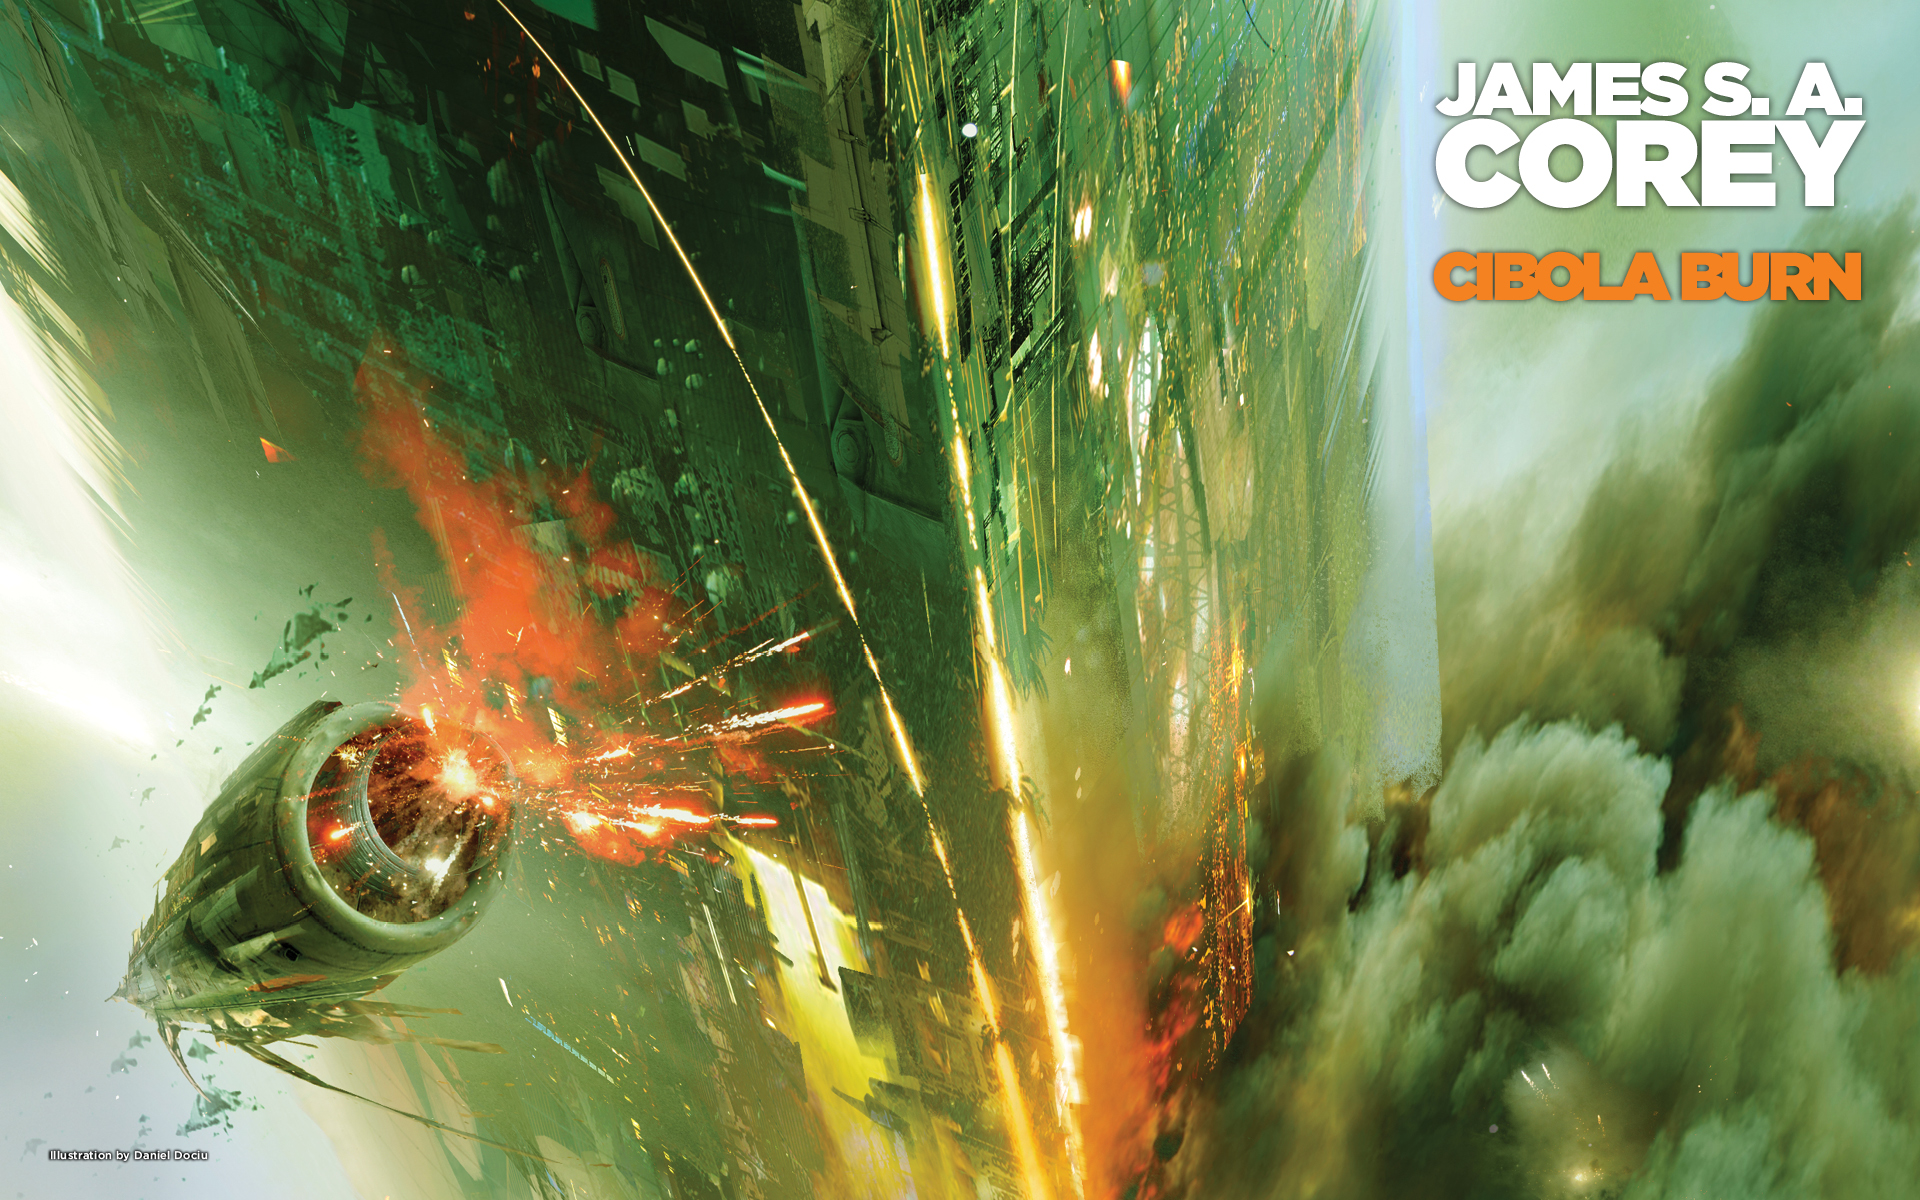 New Wallpapers Cibola Burn By James S A Corey Orbit Books